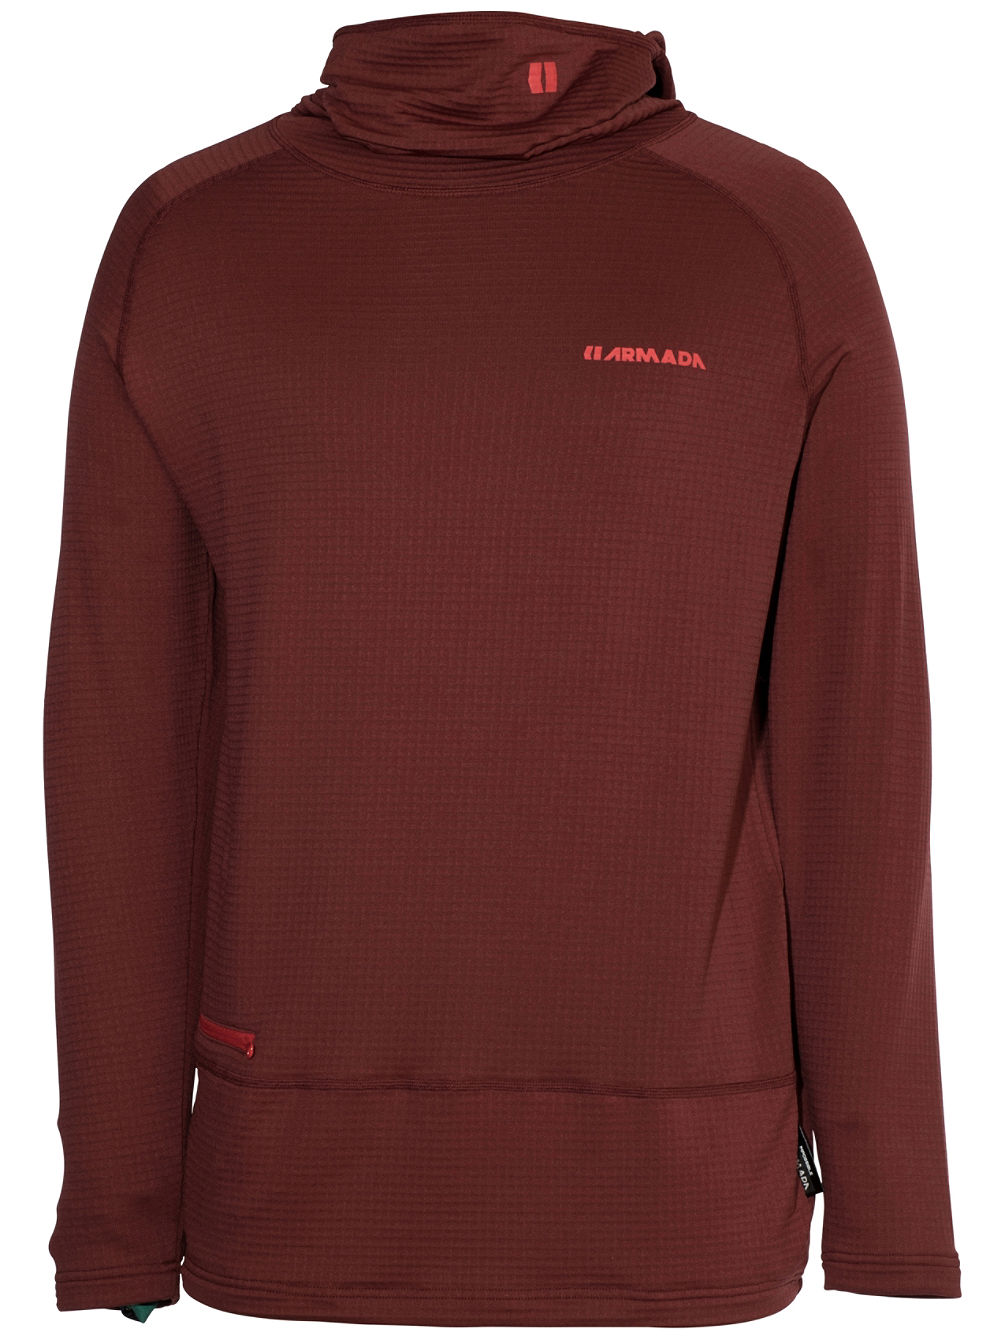 Rotor Lw Hooded Tech Tee LS